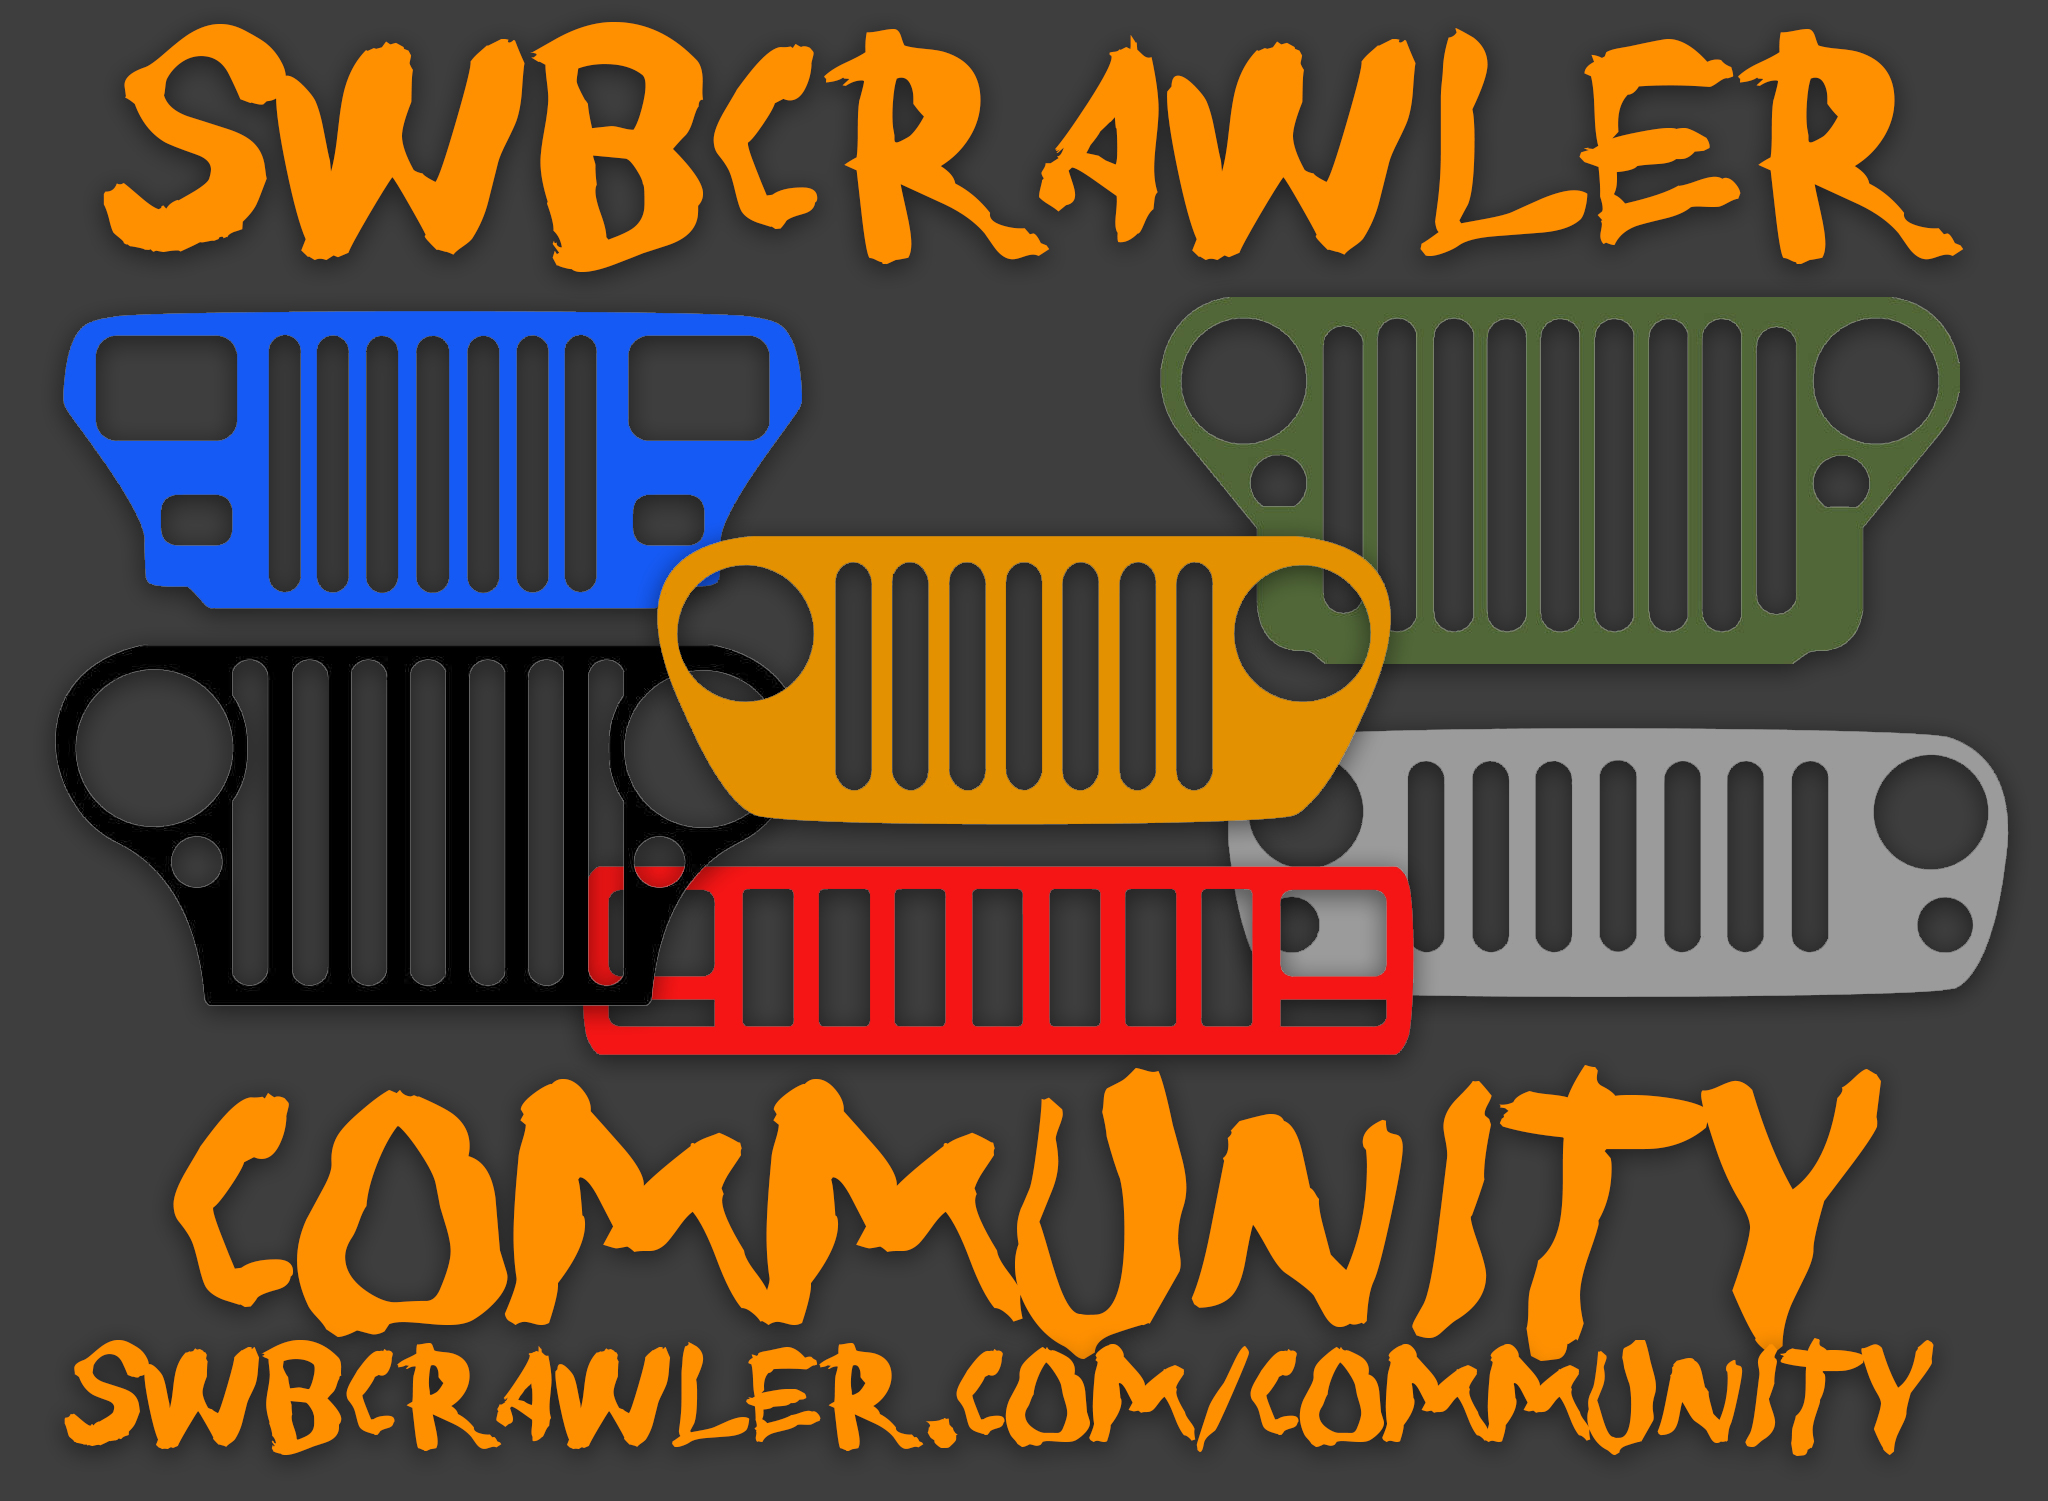 SWBCrawler has an announcement to make. I hope you're watching. ;)